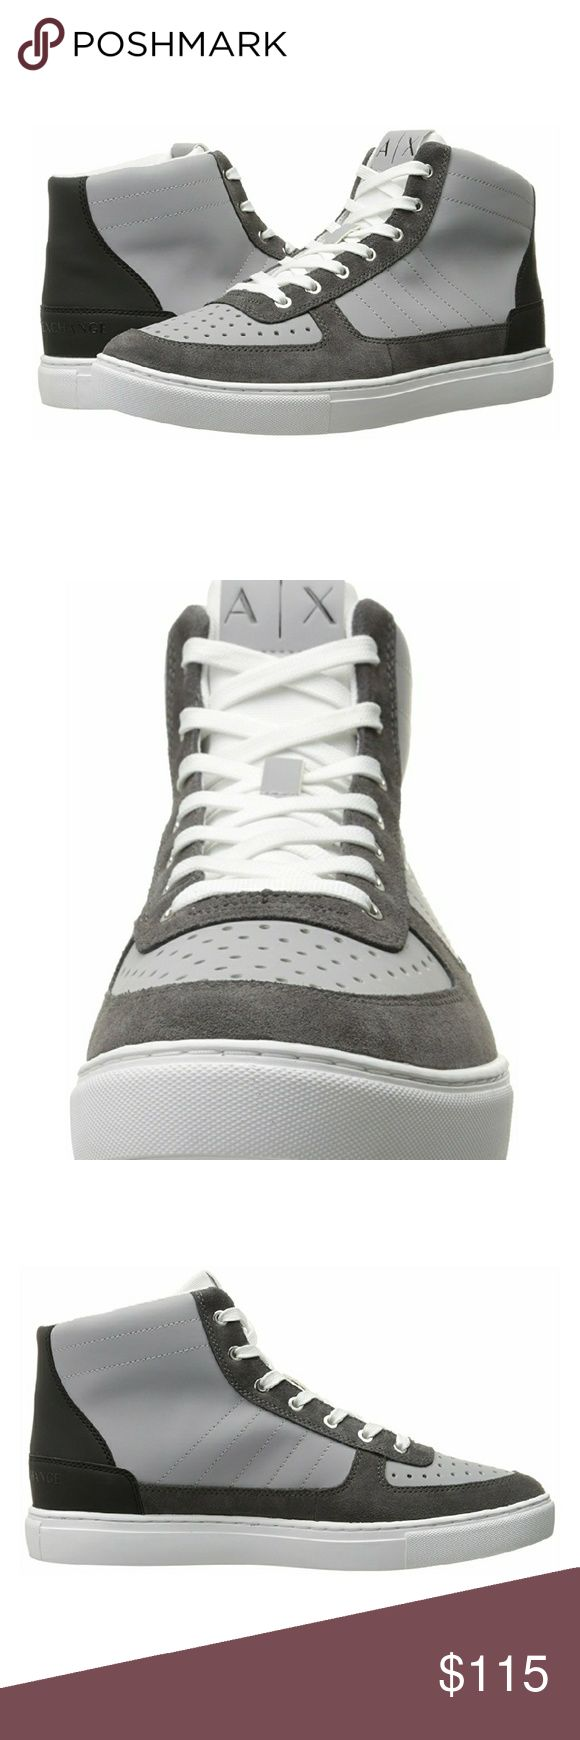 A|X Armani Exchange Sneakers Featuring visible stitch detailing and a perforated toe, this two-toned high-top is a go-to for everyday style. Armani Exchange Shoes Sneakers